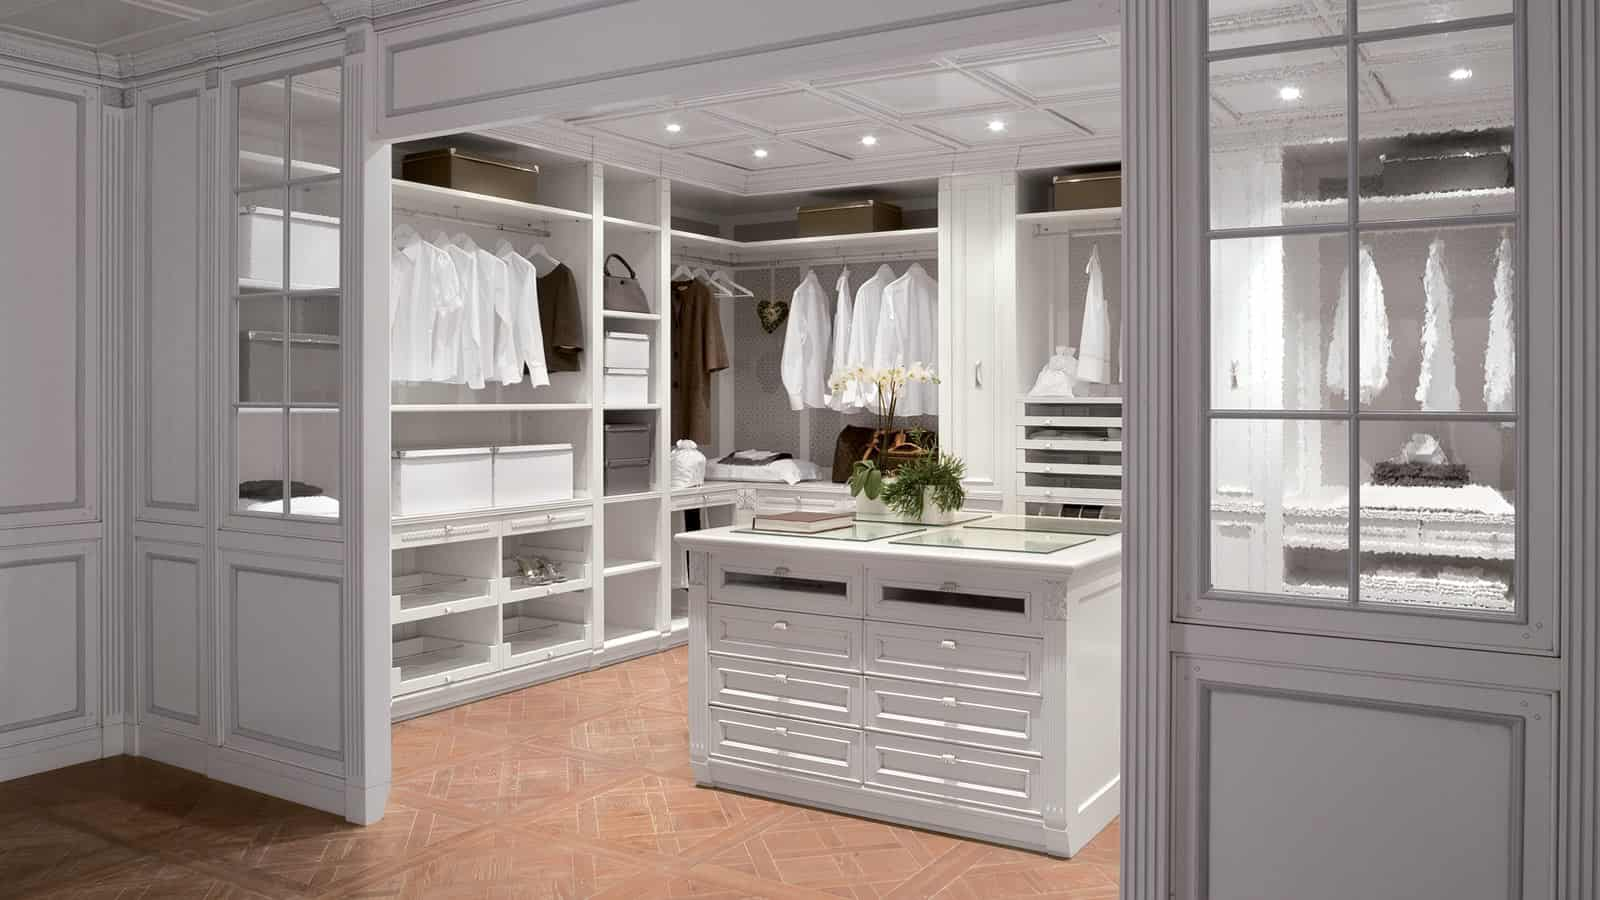 Walk in Closet DéCor Options You Should Consider